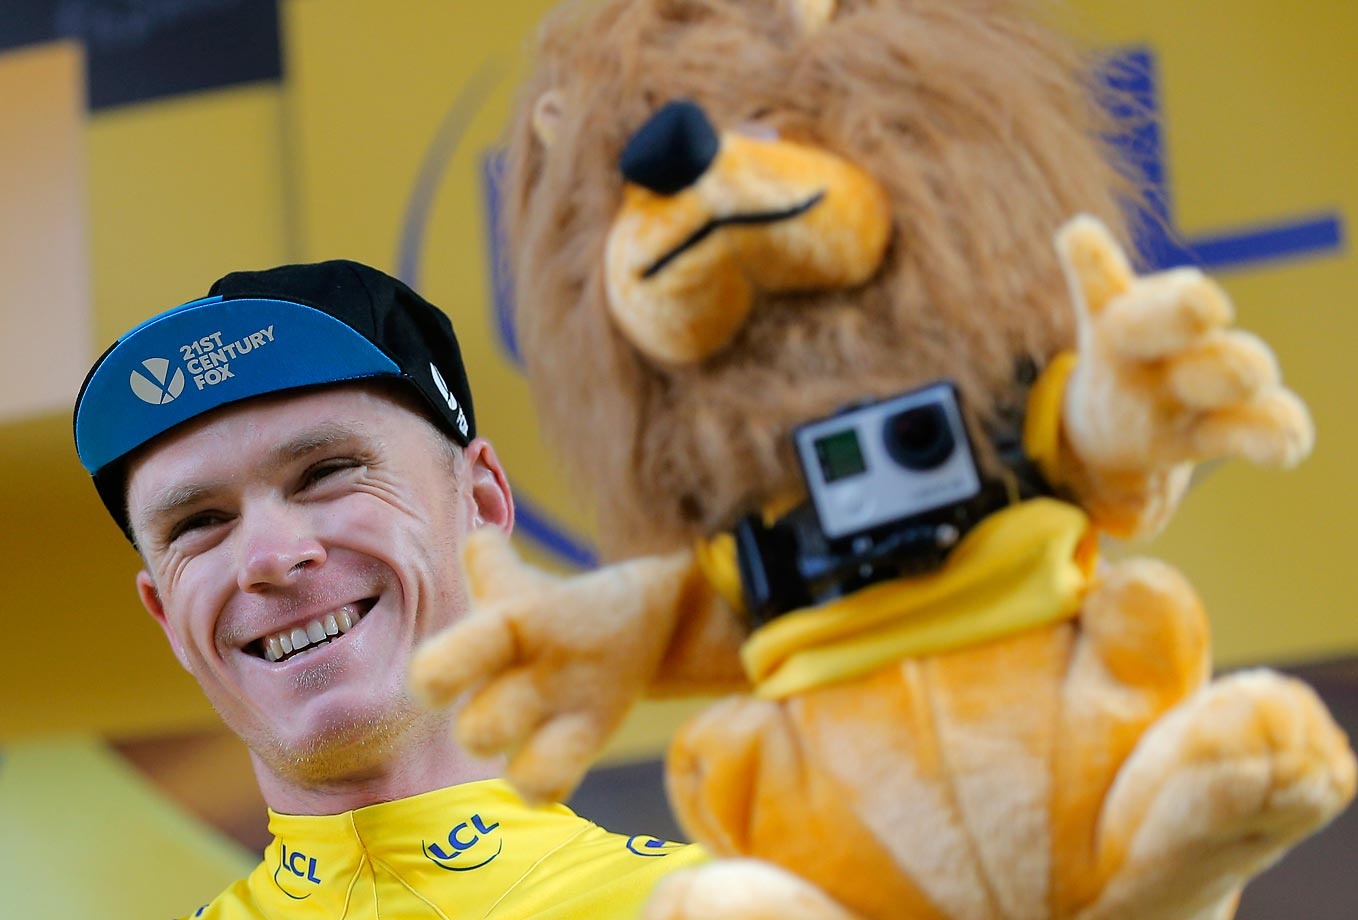 Chris Froome, wearing the overall leader's yellow jersey, is all smiles as he holds the yellow jersey's trophy equipped with a camera on the podium of the 16th stage of the Tour de France.